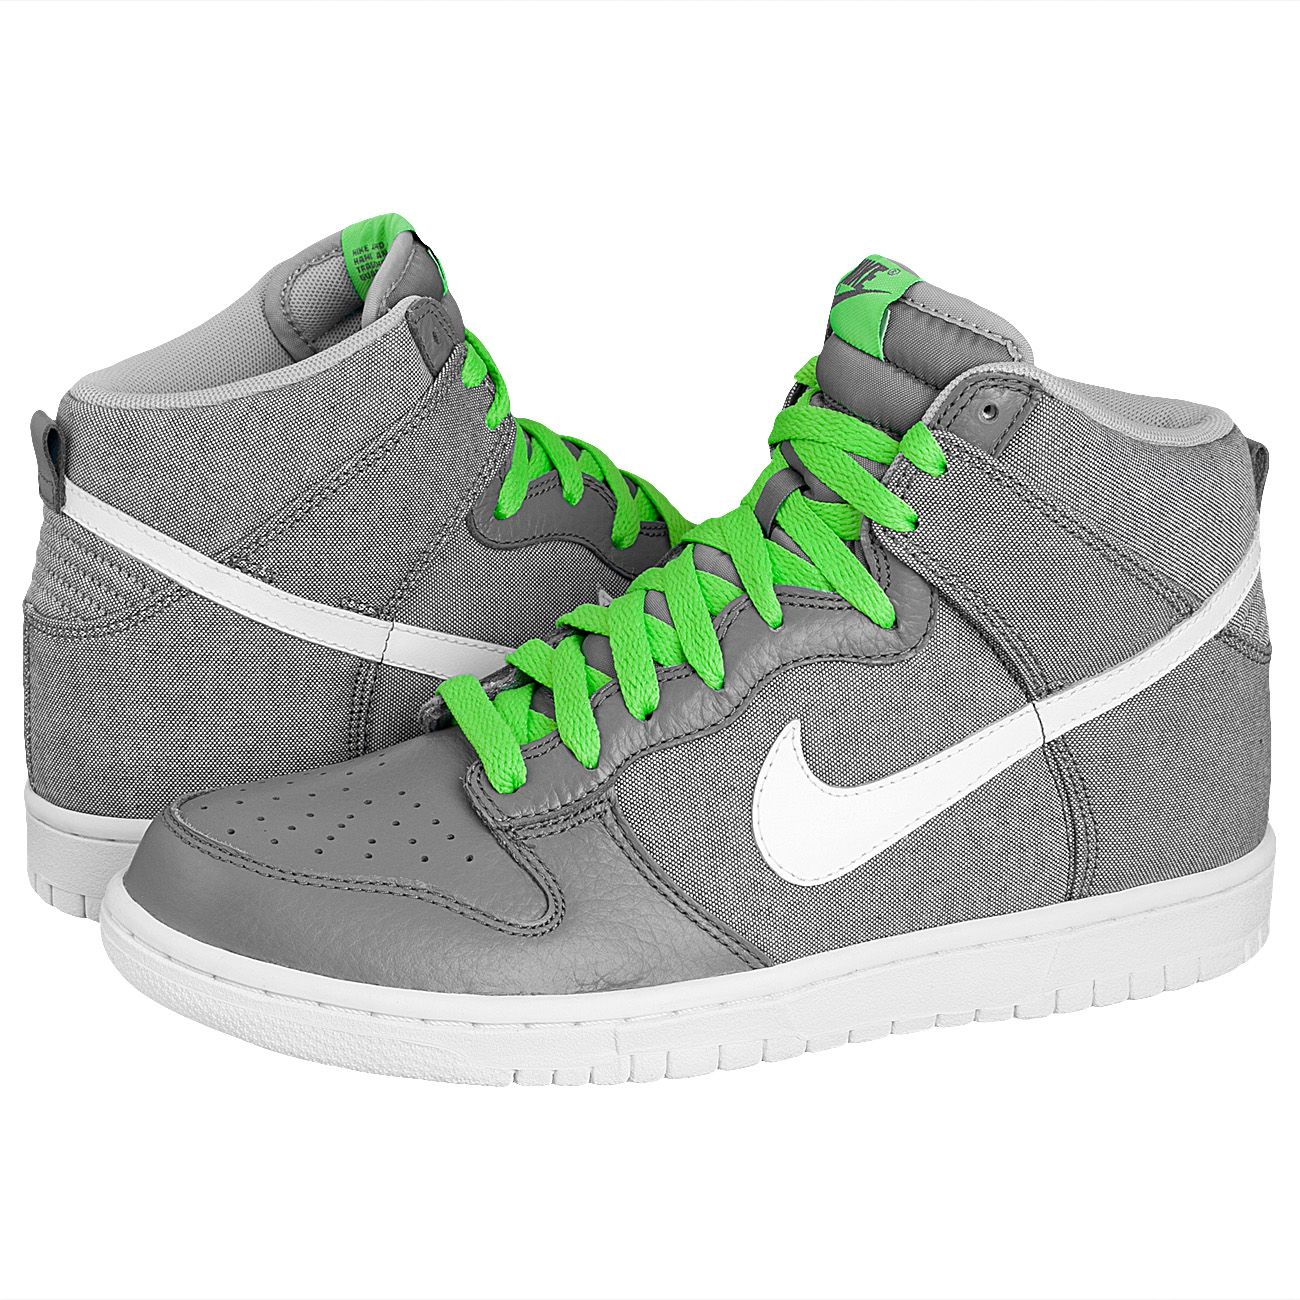 Shoe High GreyWhiteCool Dunk Nike Basketball Wolf Grey cRjLq3A54